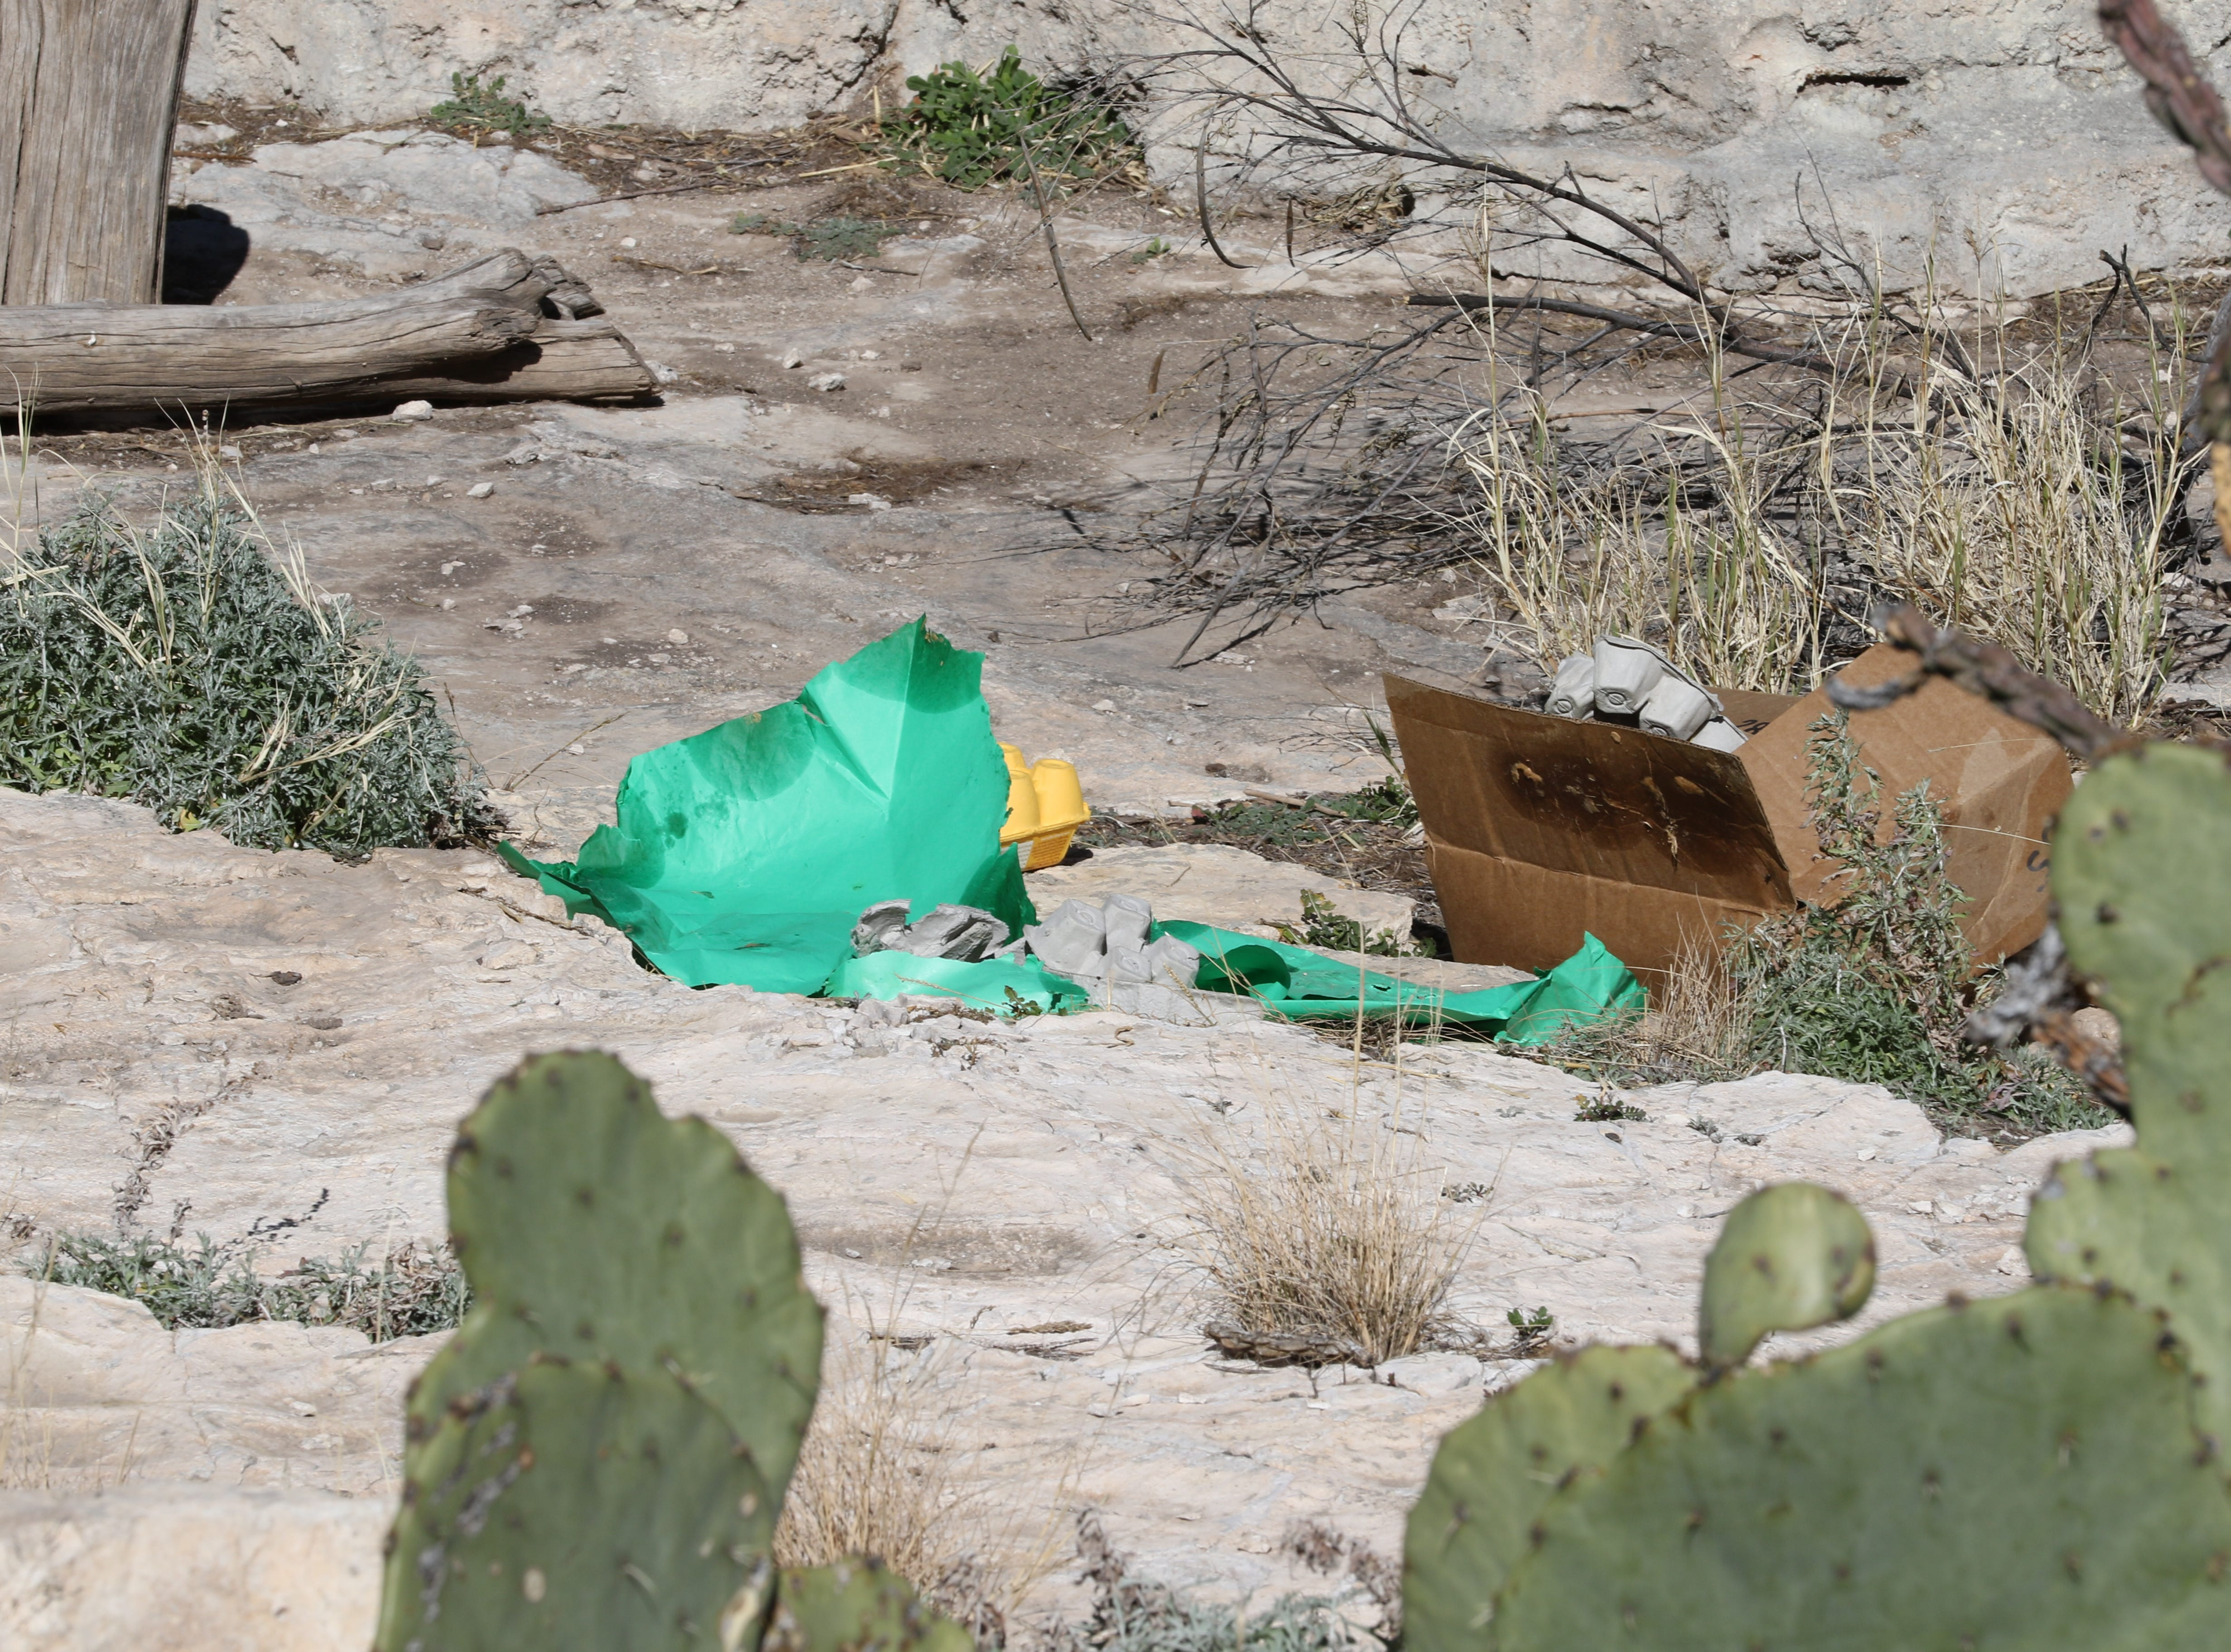 The remains from Maggie the bear's birthday meal, Jan. 19, 2018 at Living Desert Zoo and Gardens State Park.